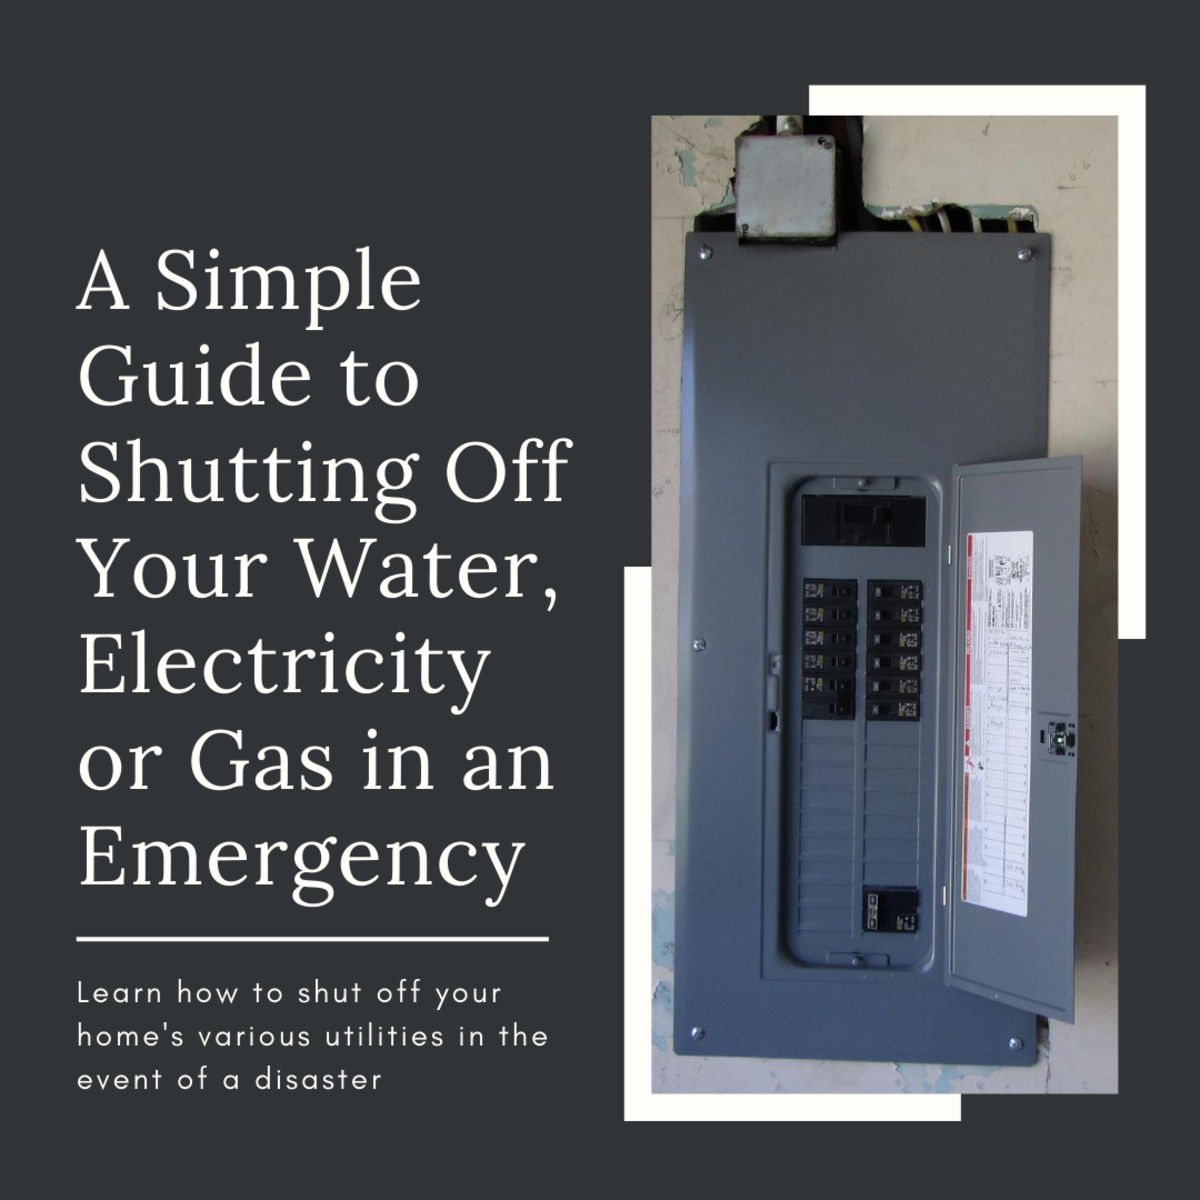 This guide will break down the process of shutting down your water, electricity, gas or other utilities in the event of a disaster or other emergency.